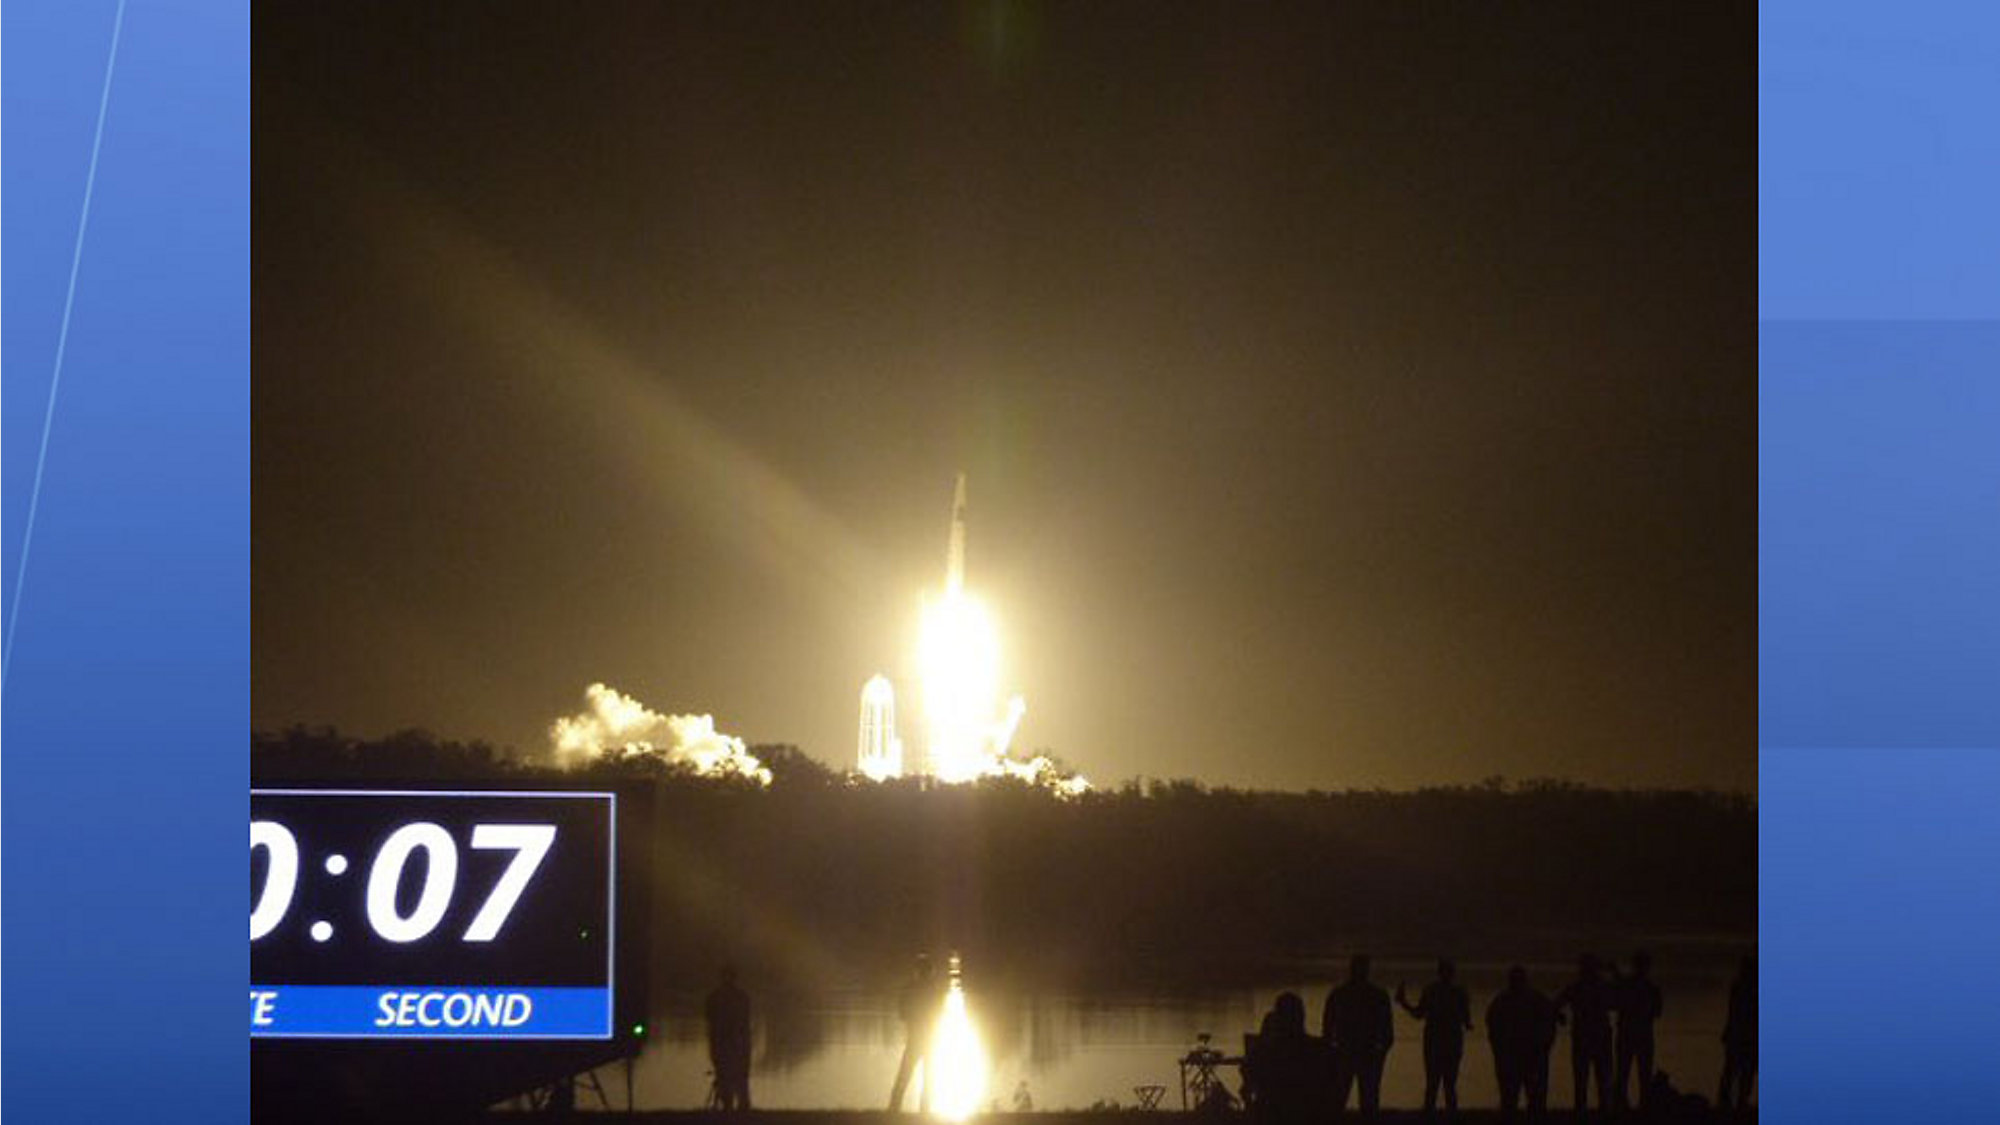 SpaceX Sends 1st Crew Dragon to ISS